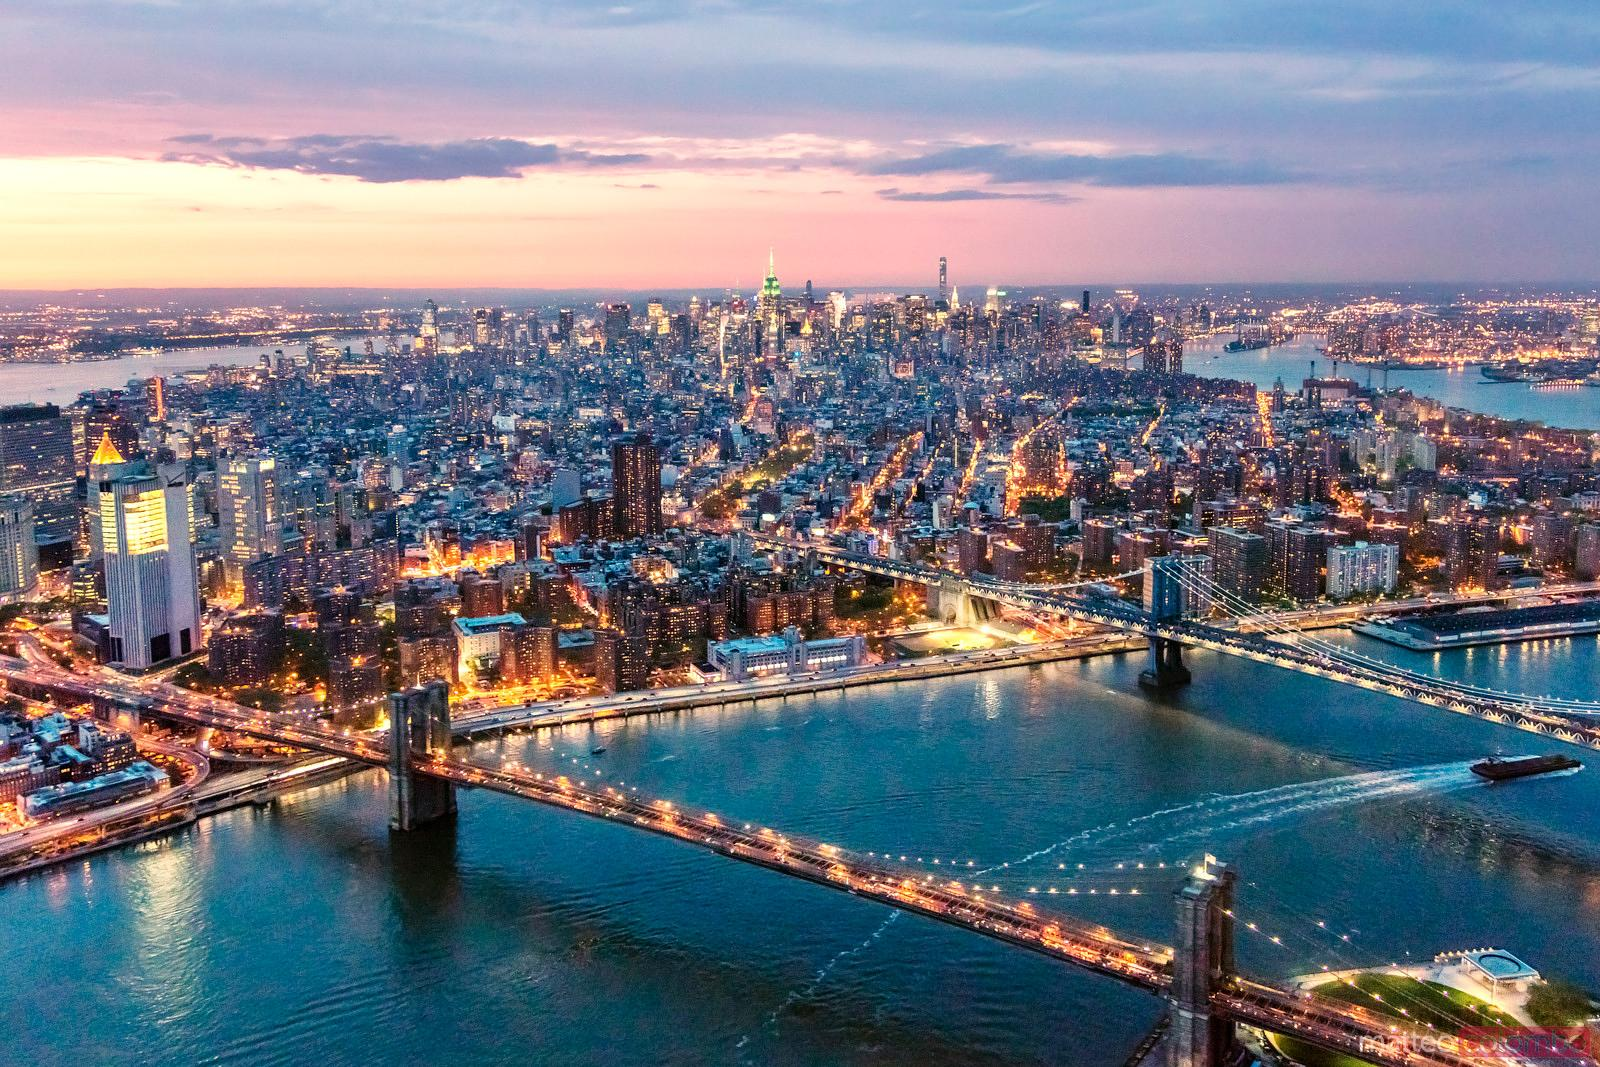 Aerial of Midtown Manhattan at dusk, New York city, USA